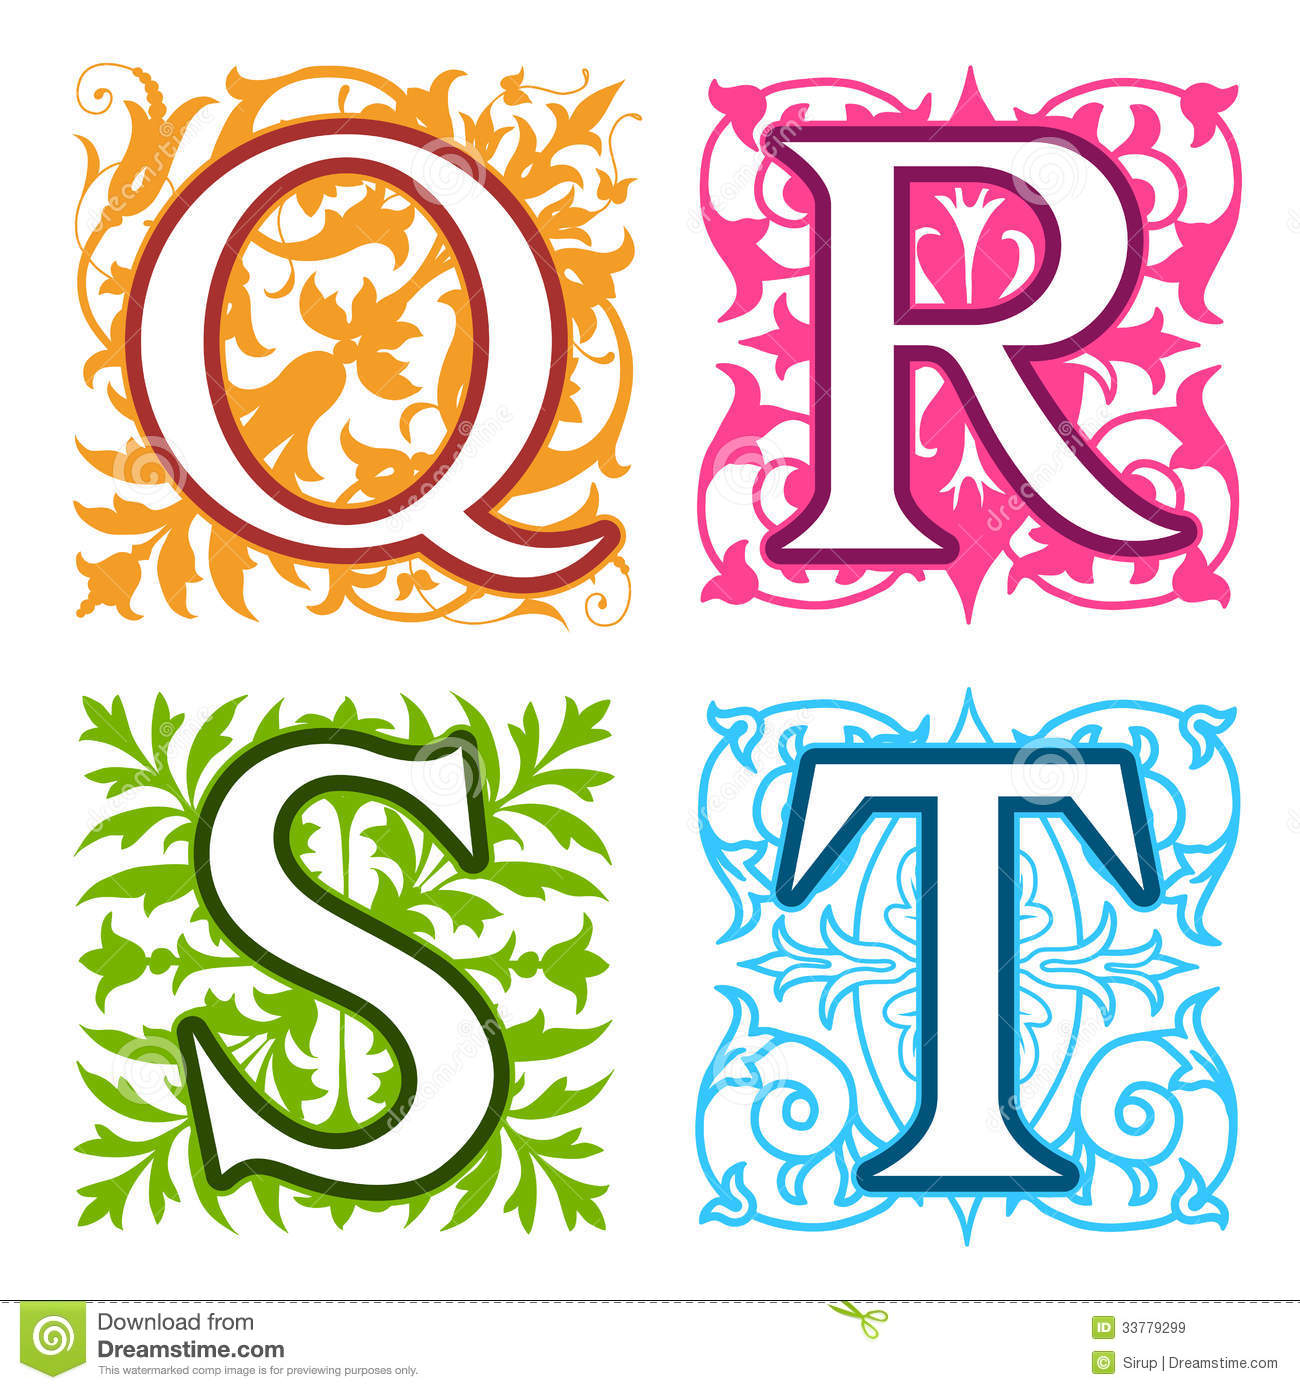 Q R S T Alphabet Letters Floral Elements Royalty Free